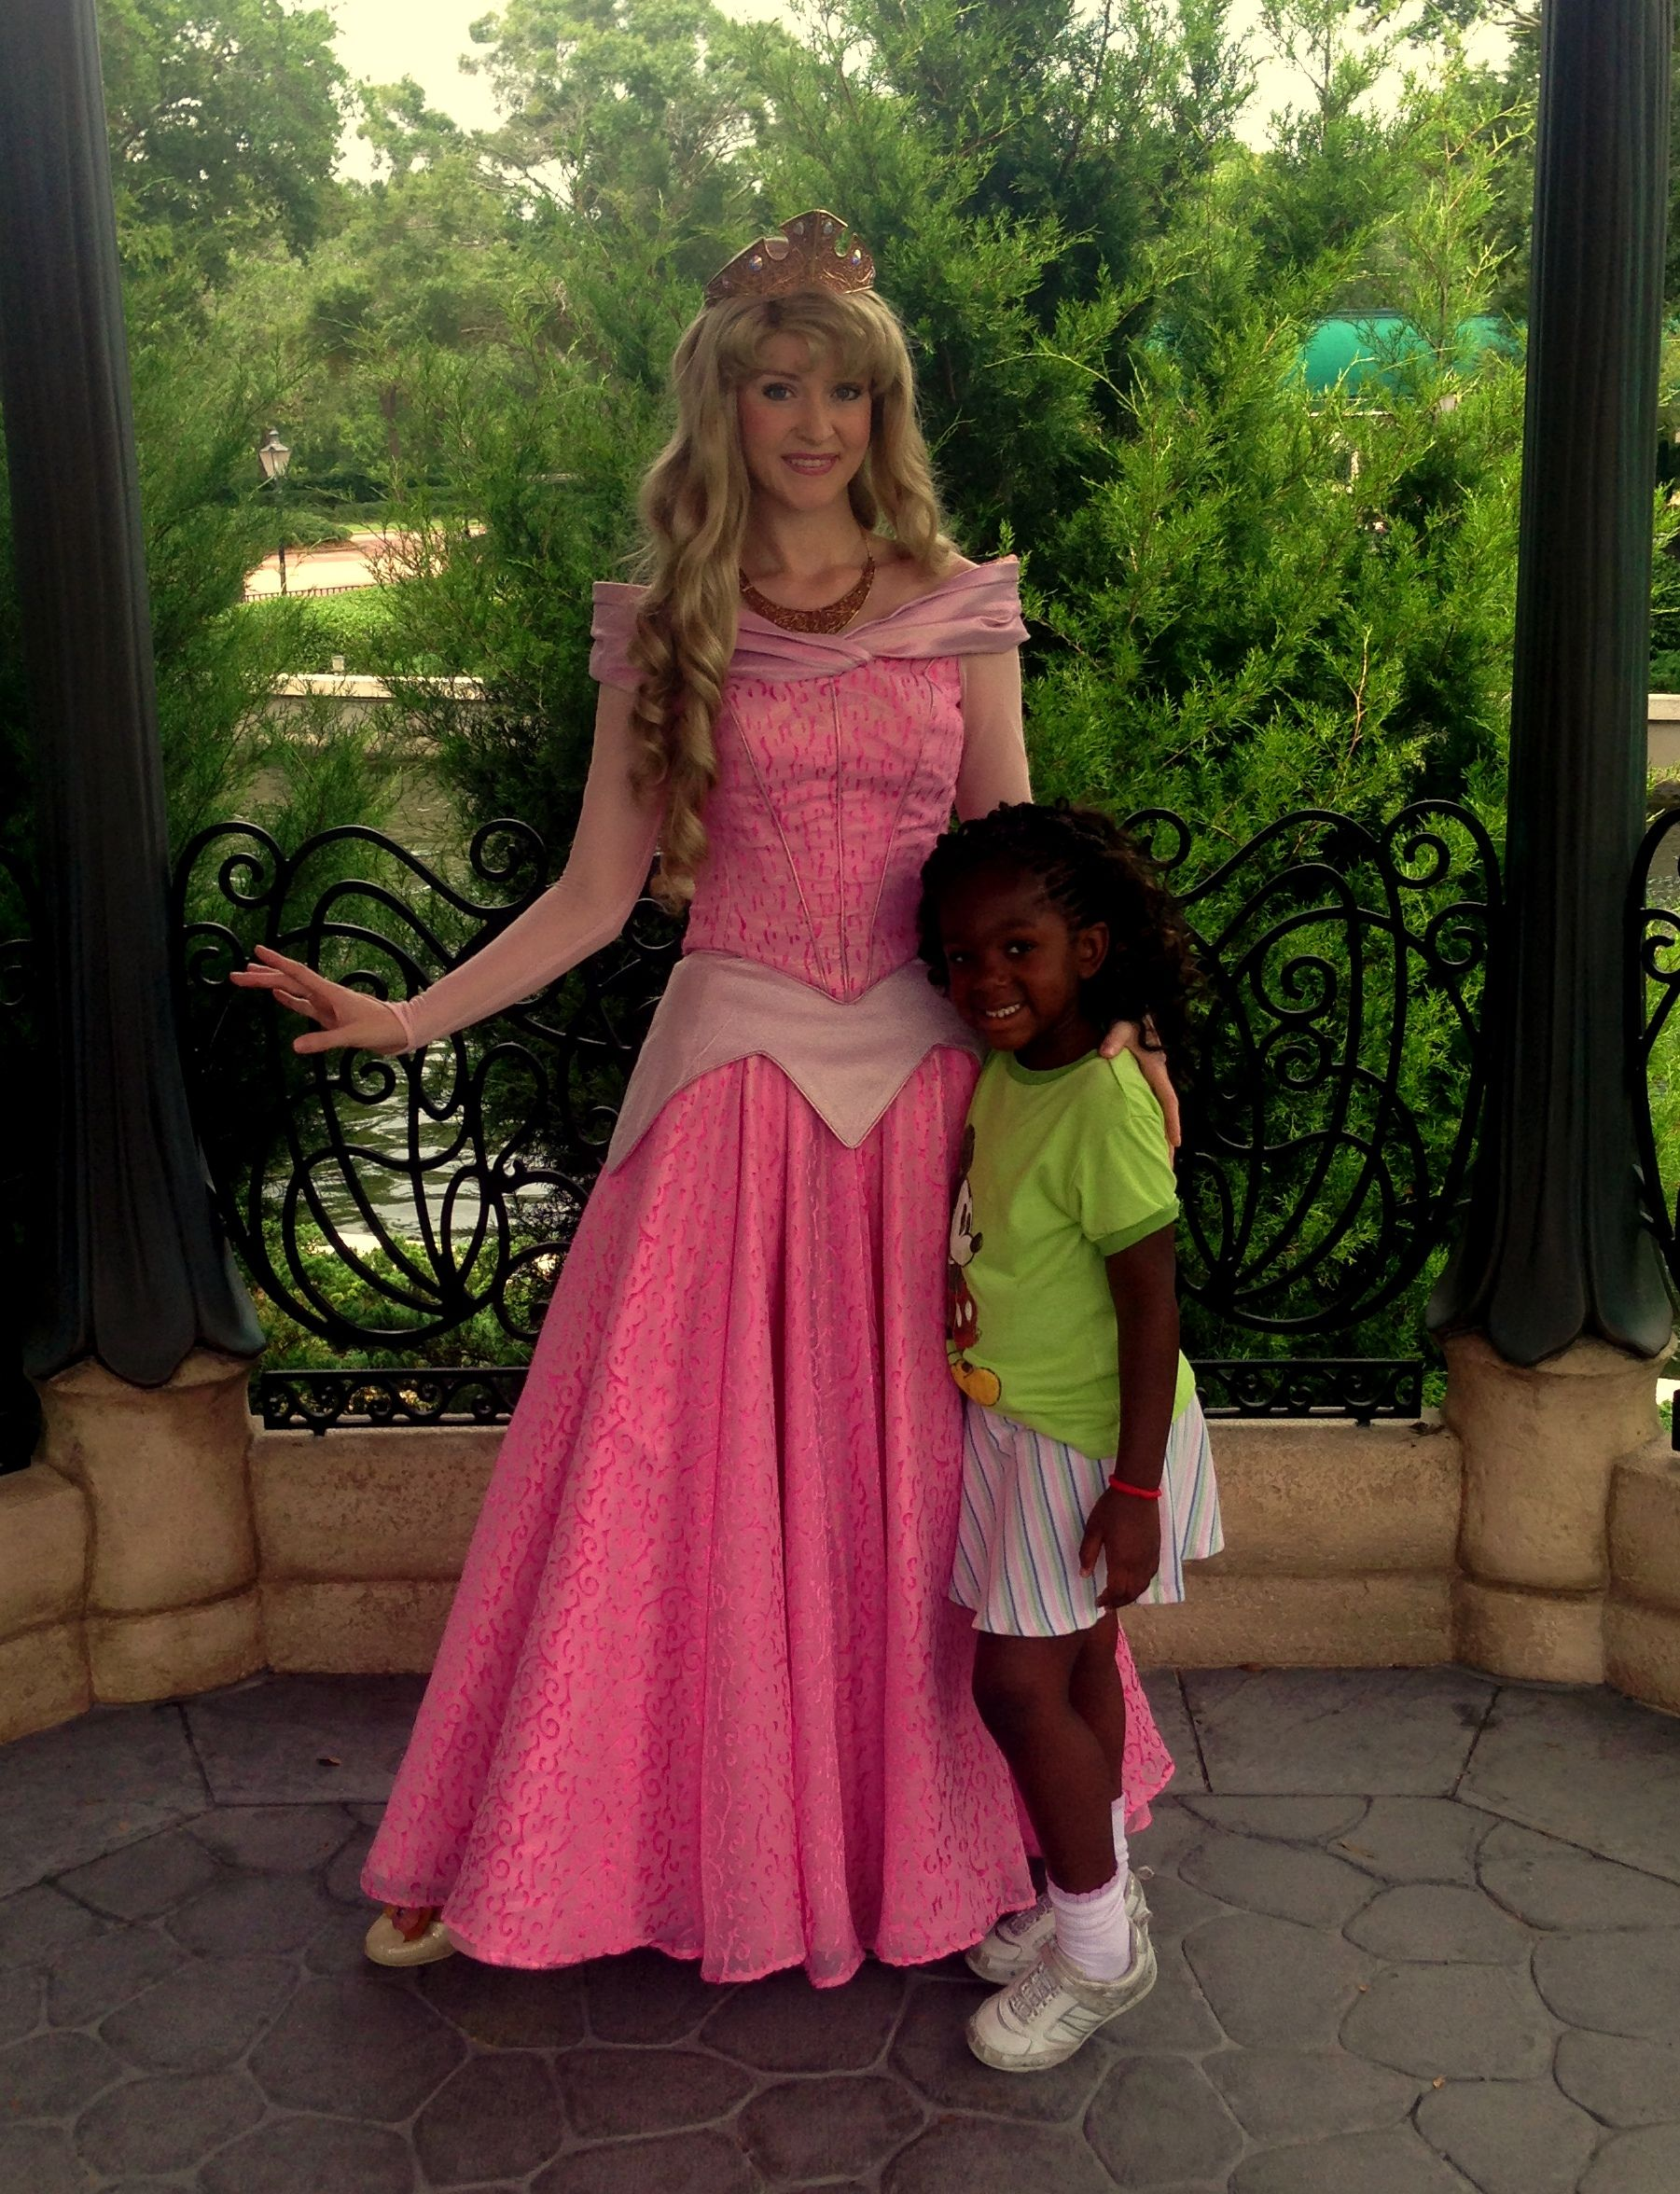 Meet And Greet With Princess Aurora Sleeping Beauty In The Gardens